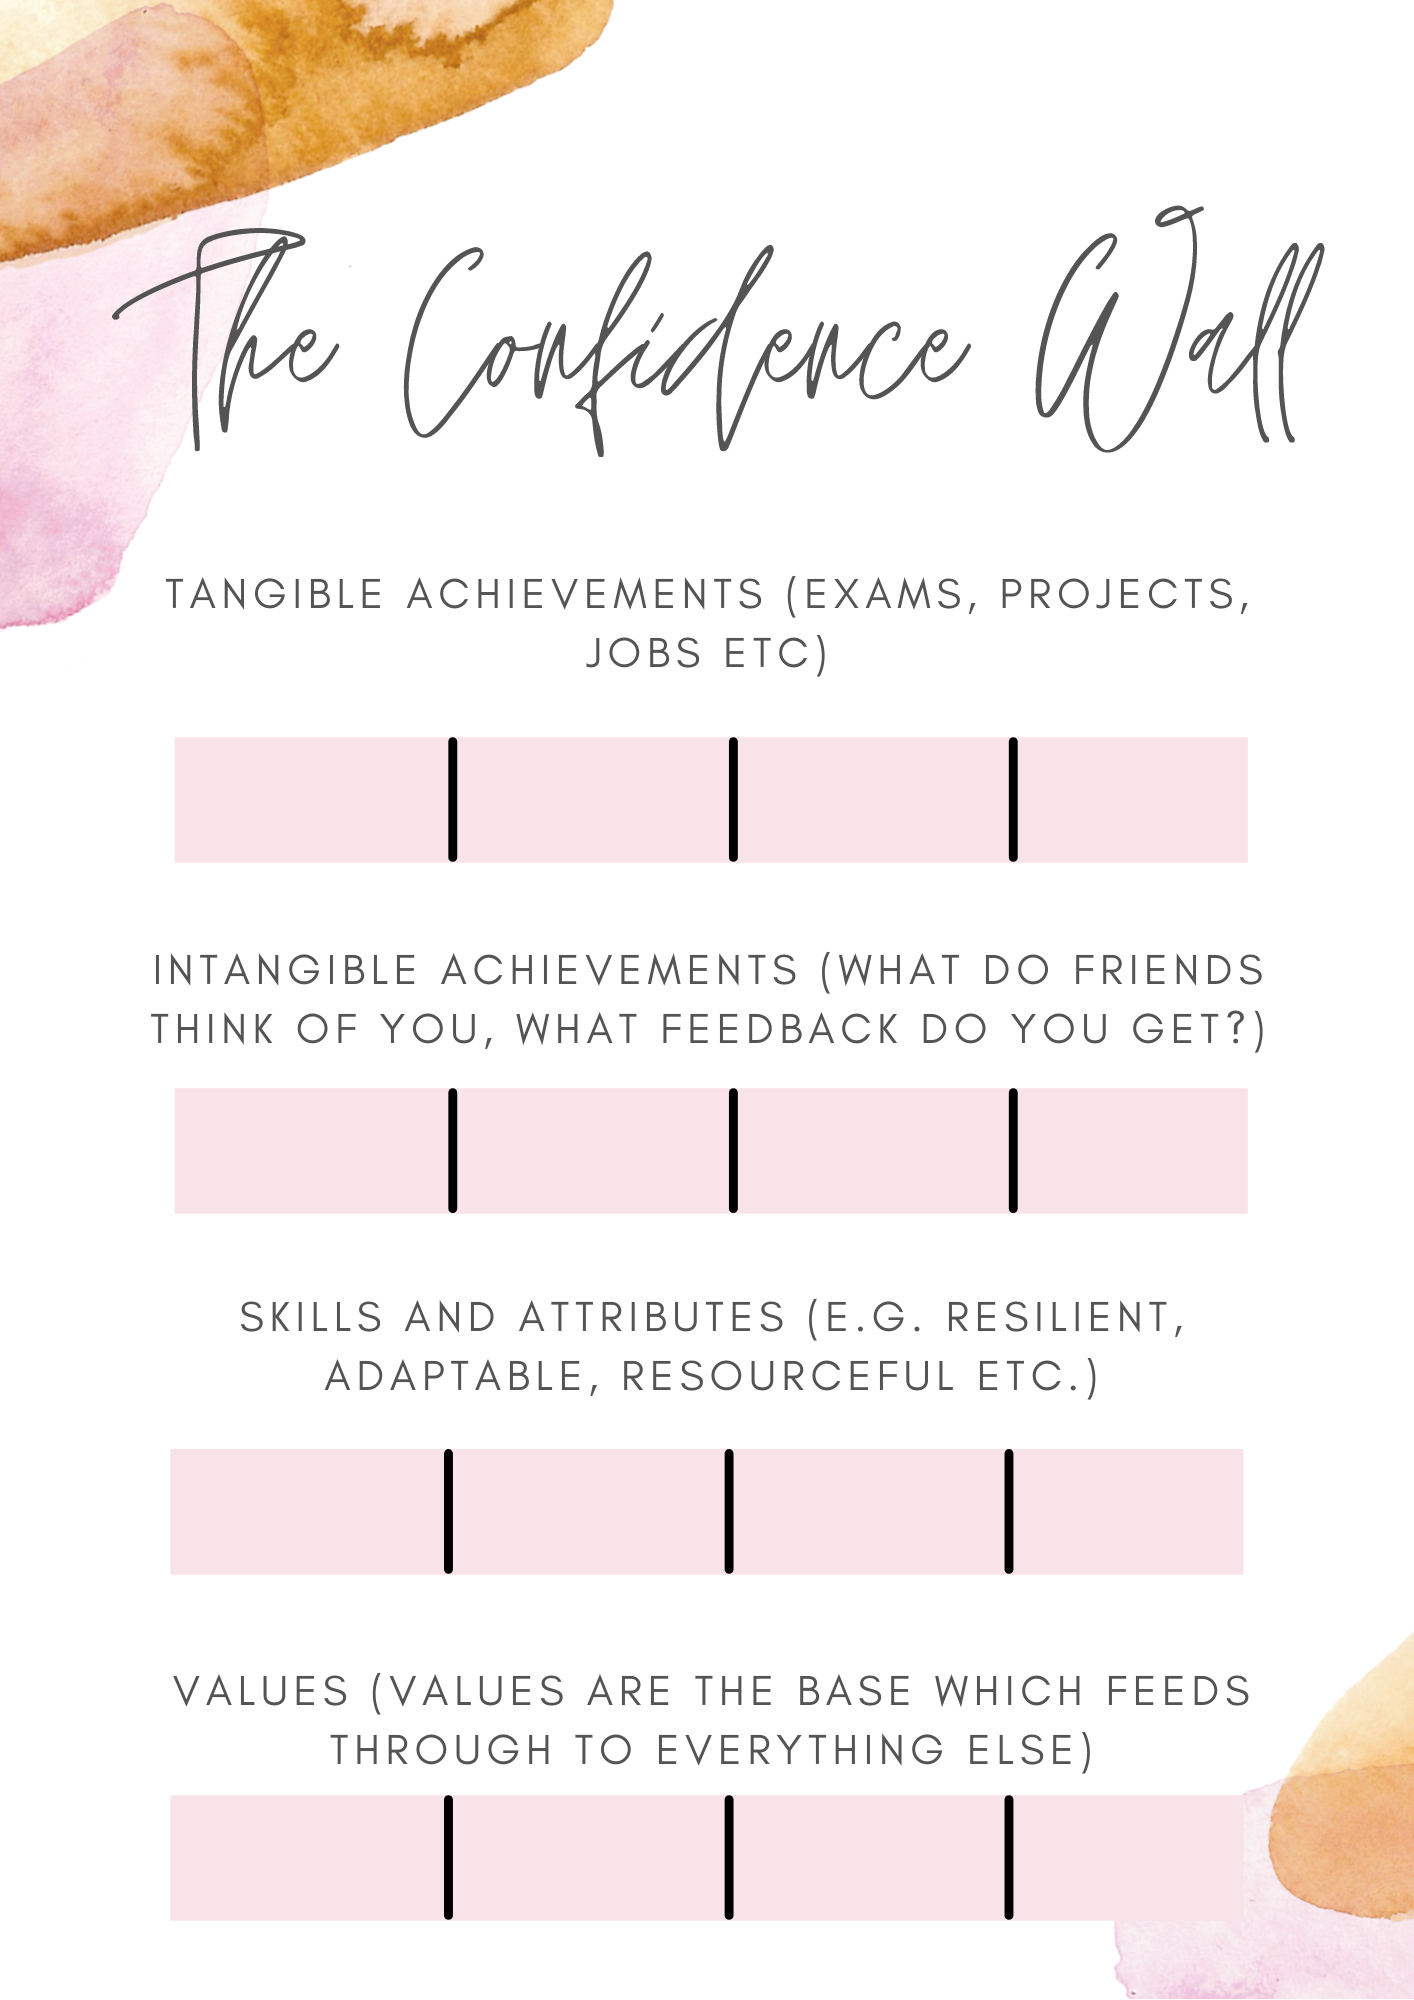 The Confidence Wall Tool